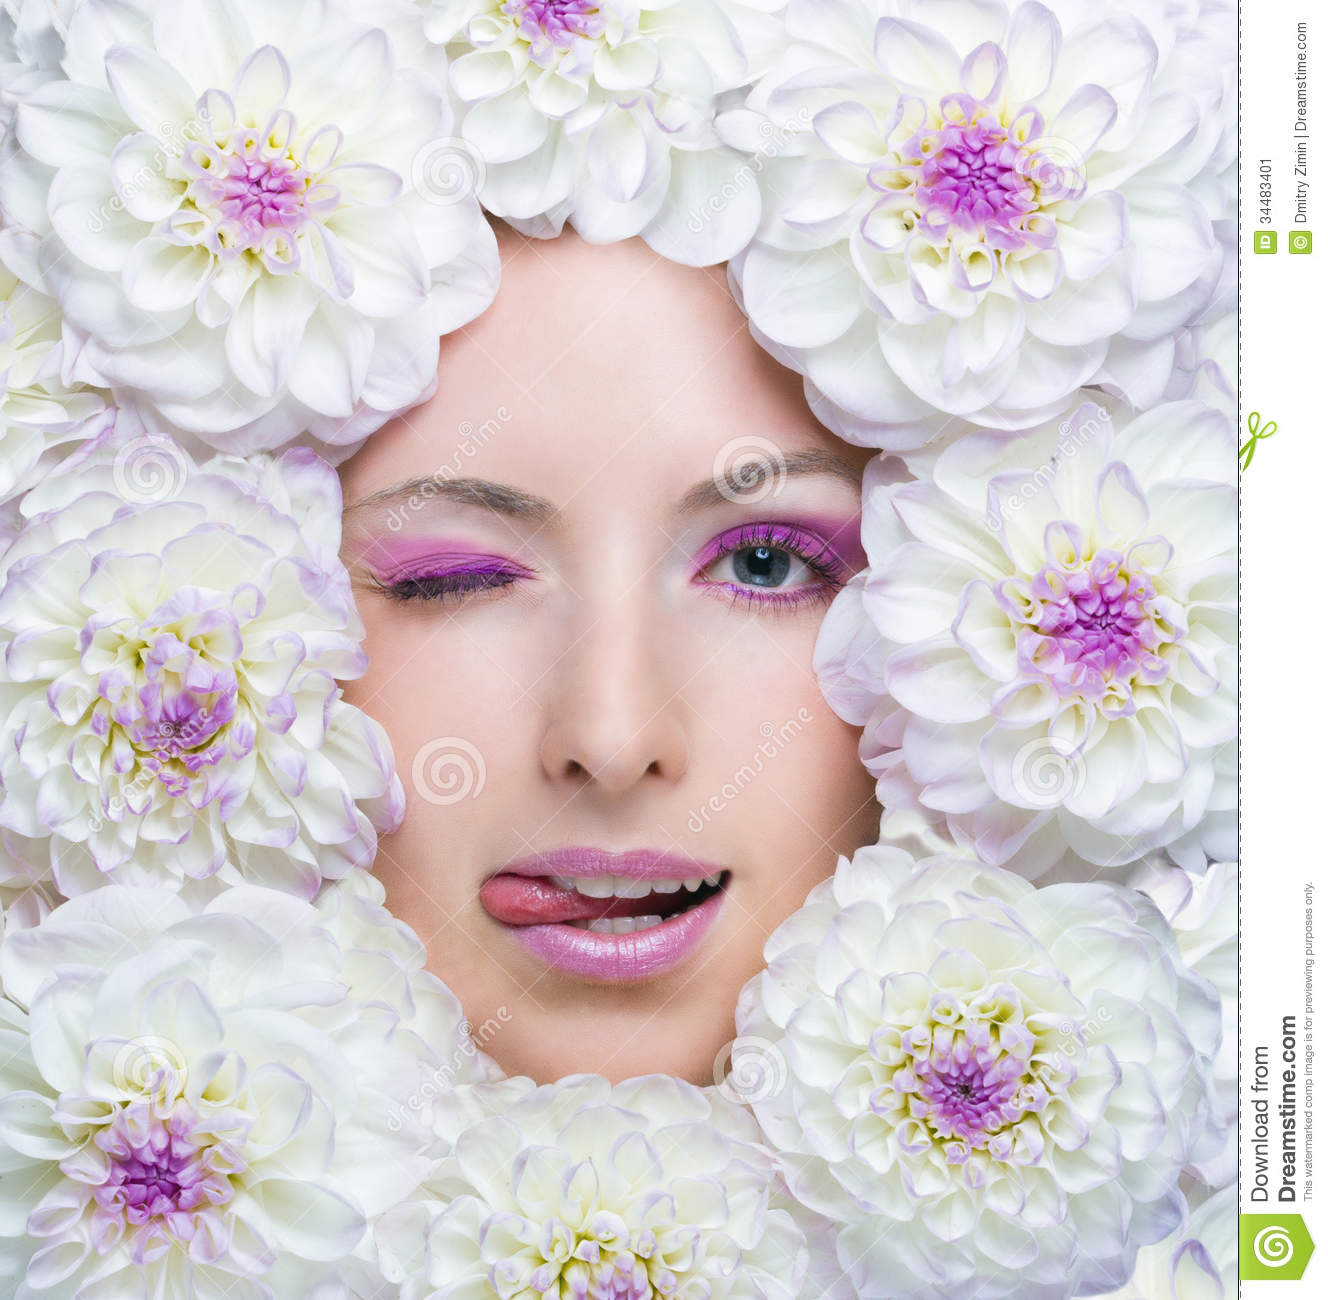 Beauty Girl With White Flowers Stock Image Image Of Emotions